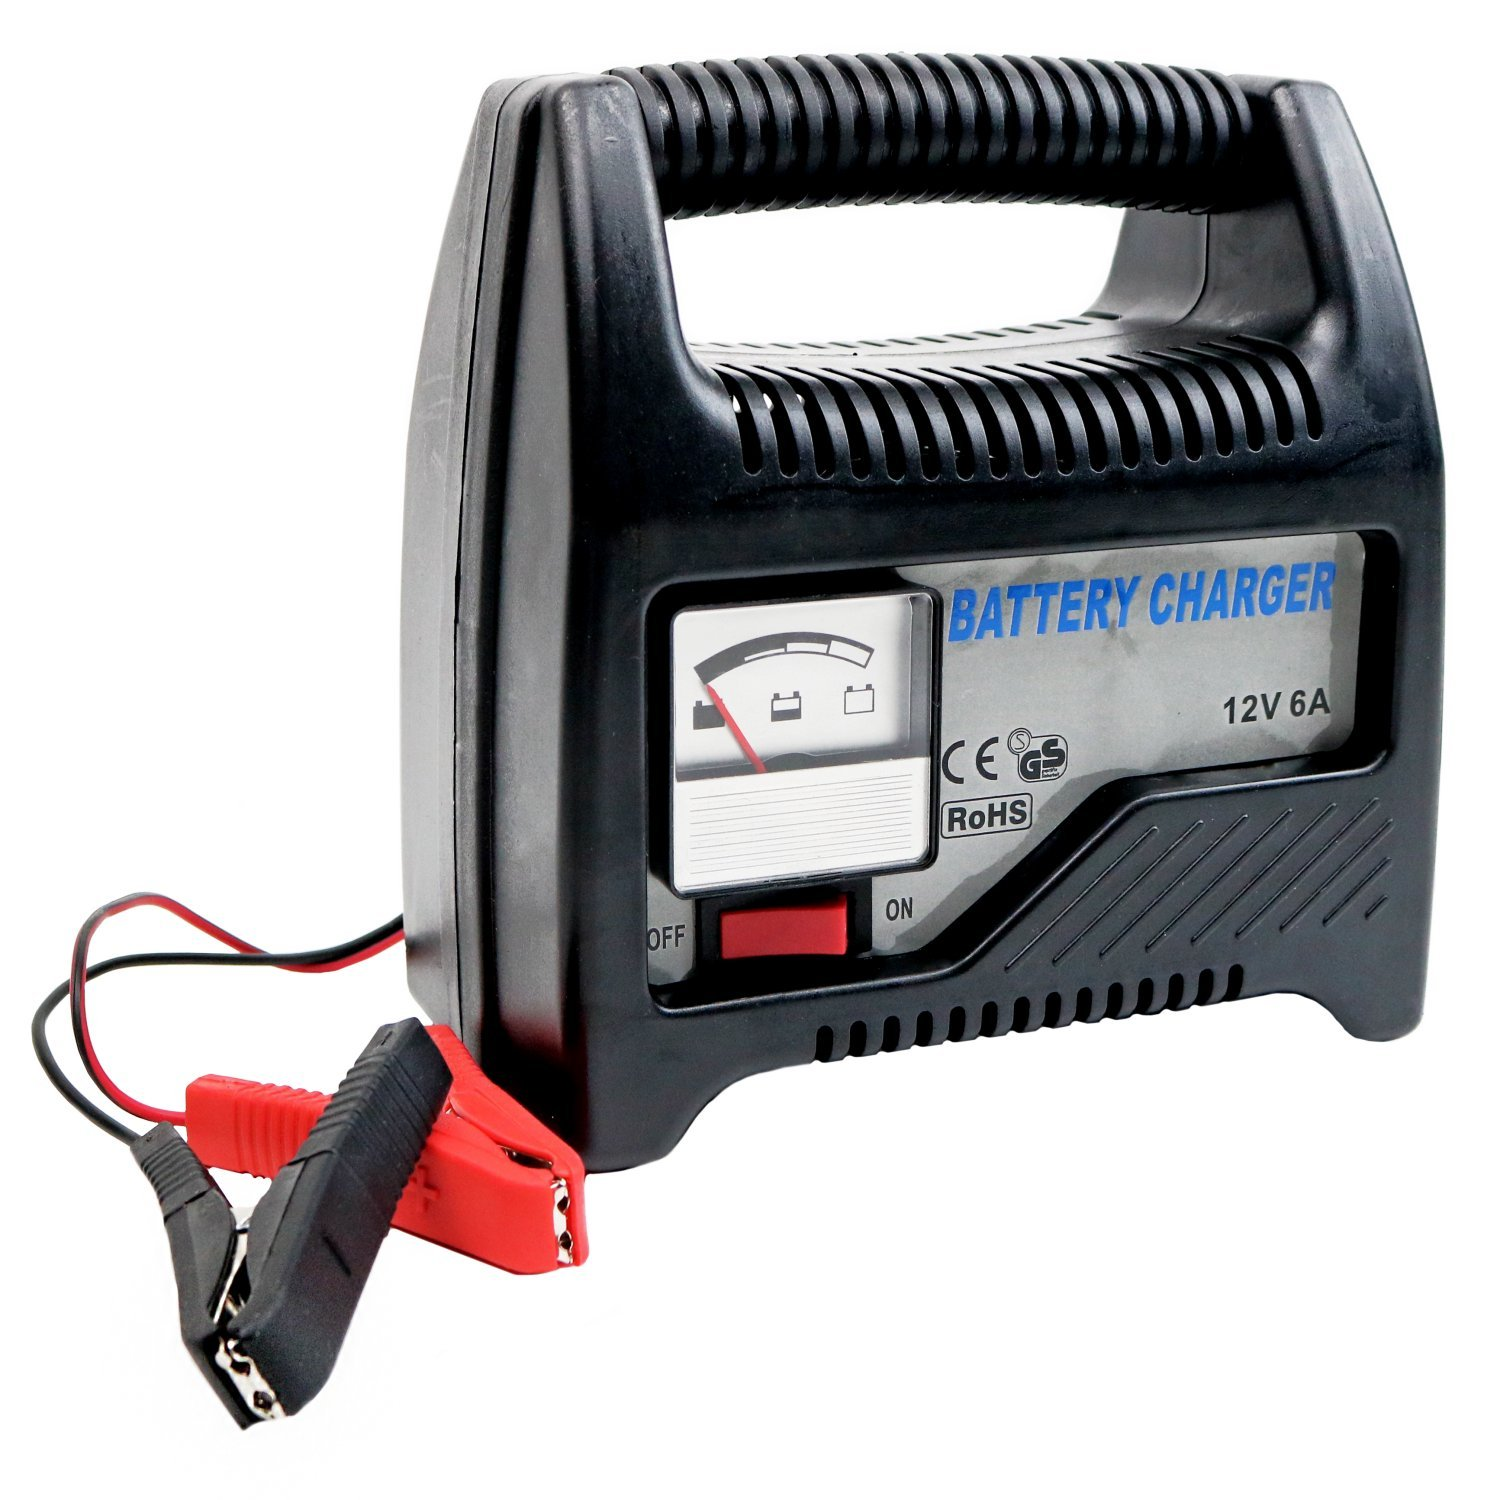 Auto Battery Charger : New a v compact portable car van vehicle battery